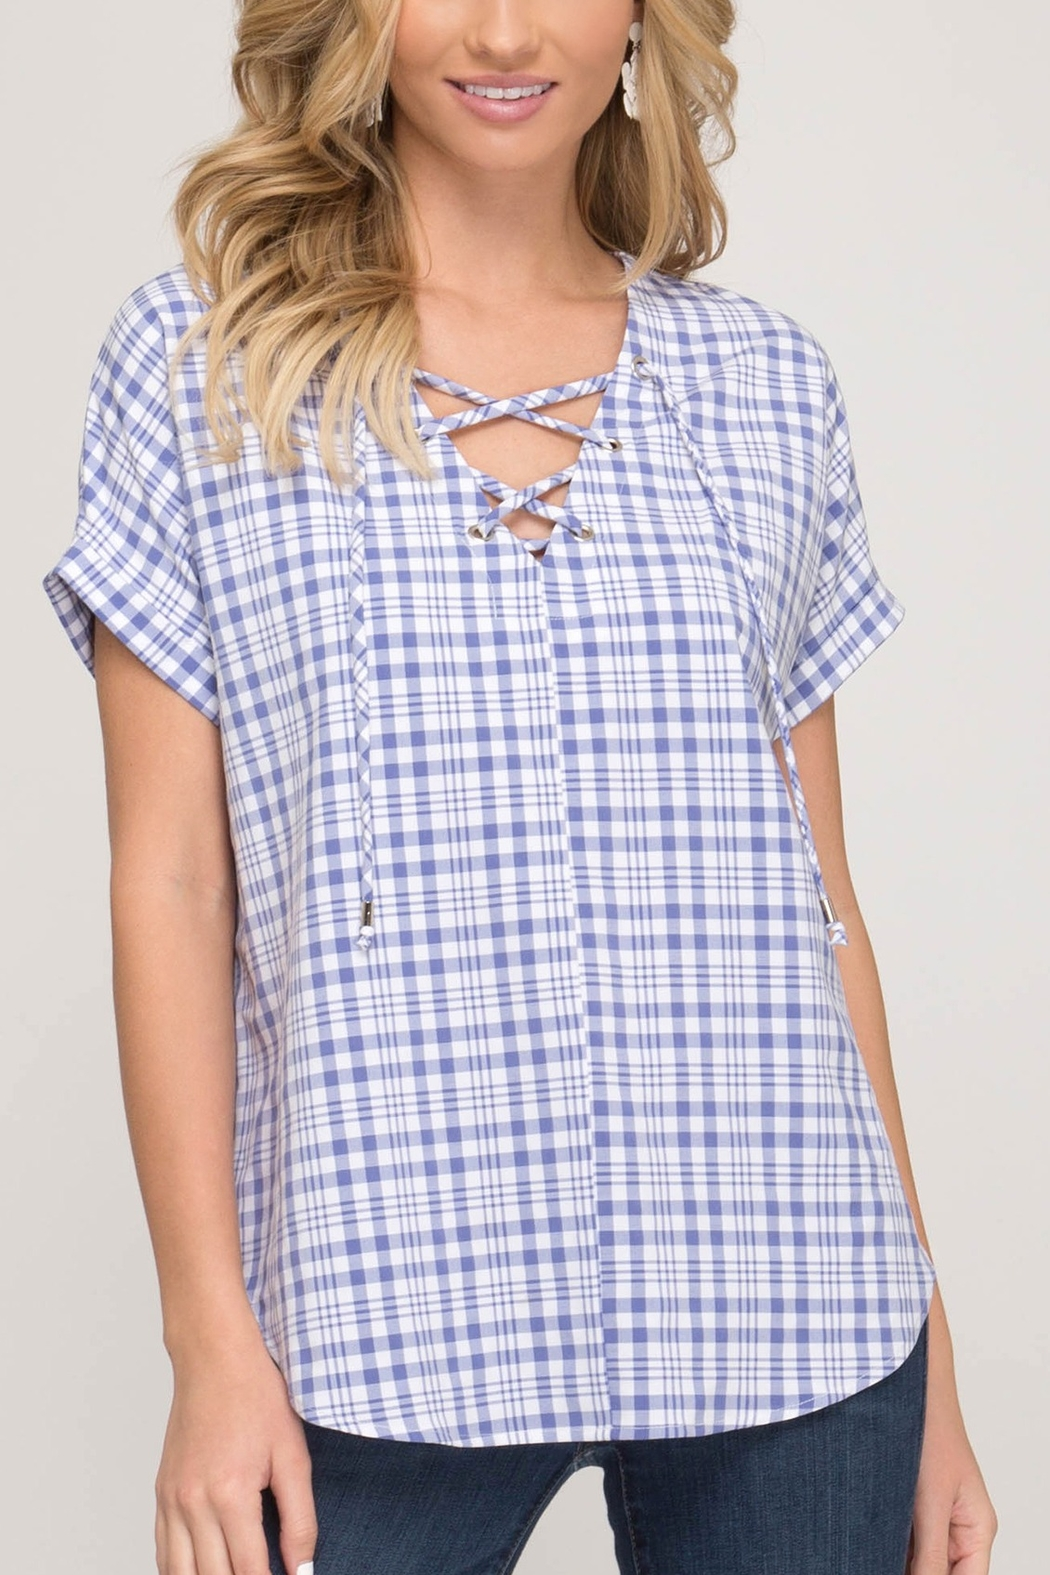 She & Sky  Gingham Lace Up Top - Front Cropped Image